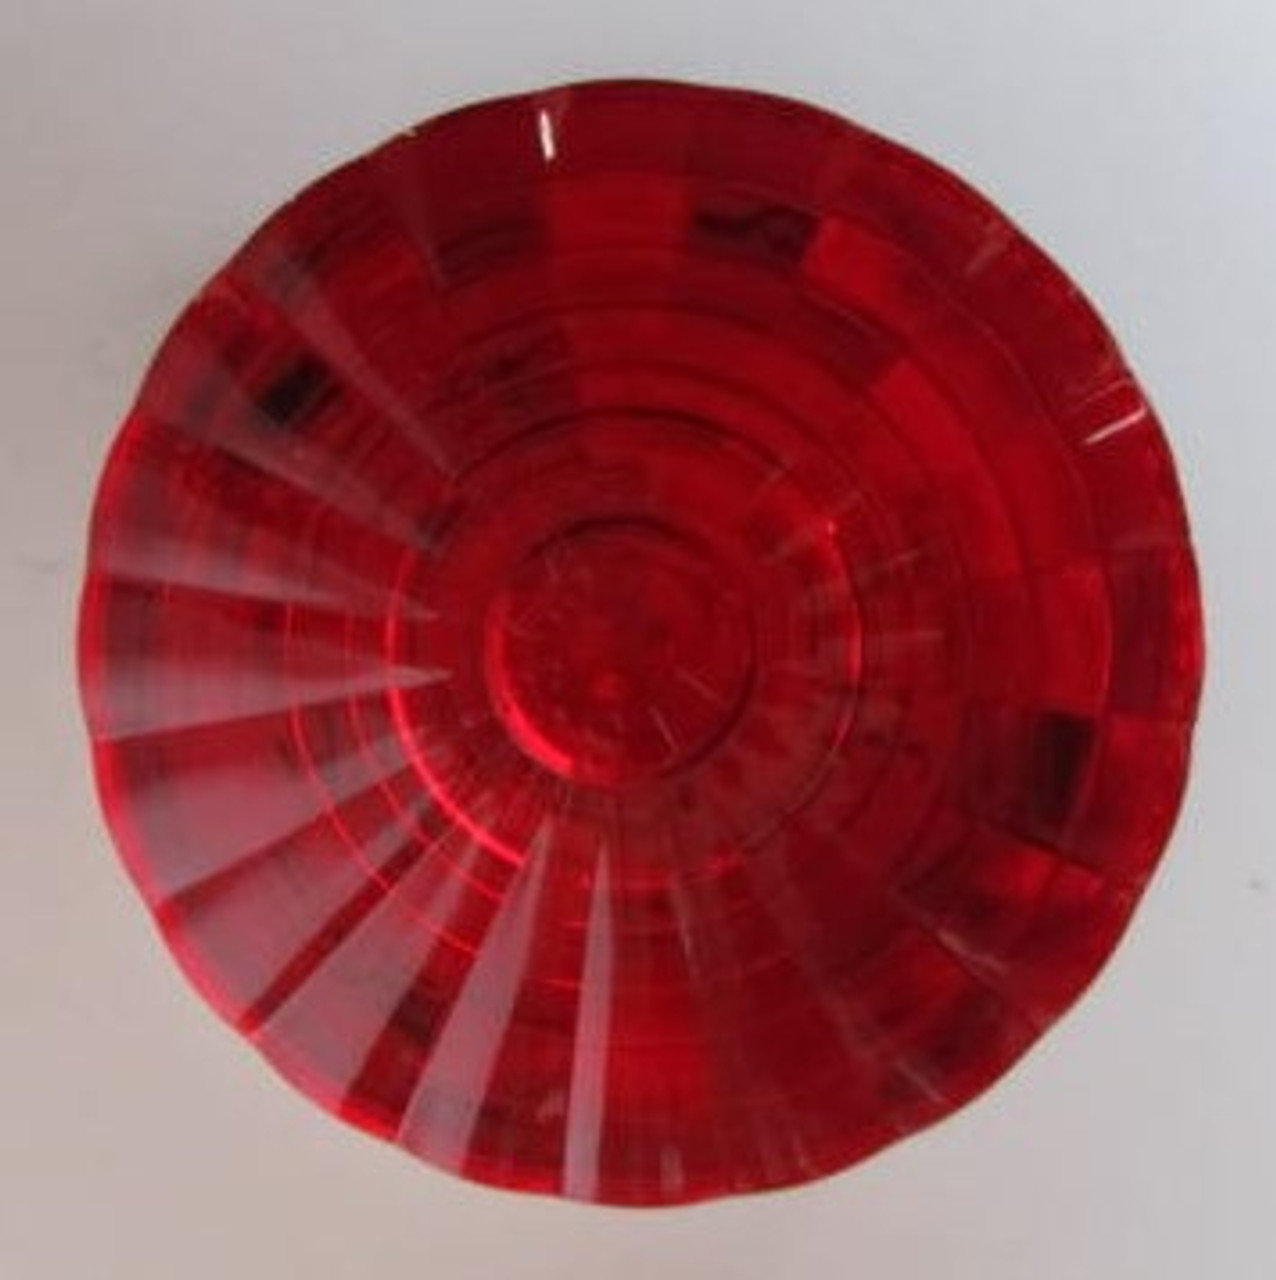 Starburst Clearance LED Complete Light -Red (CLT022)